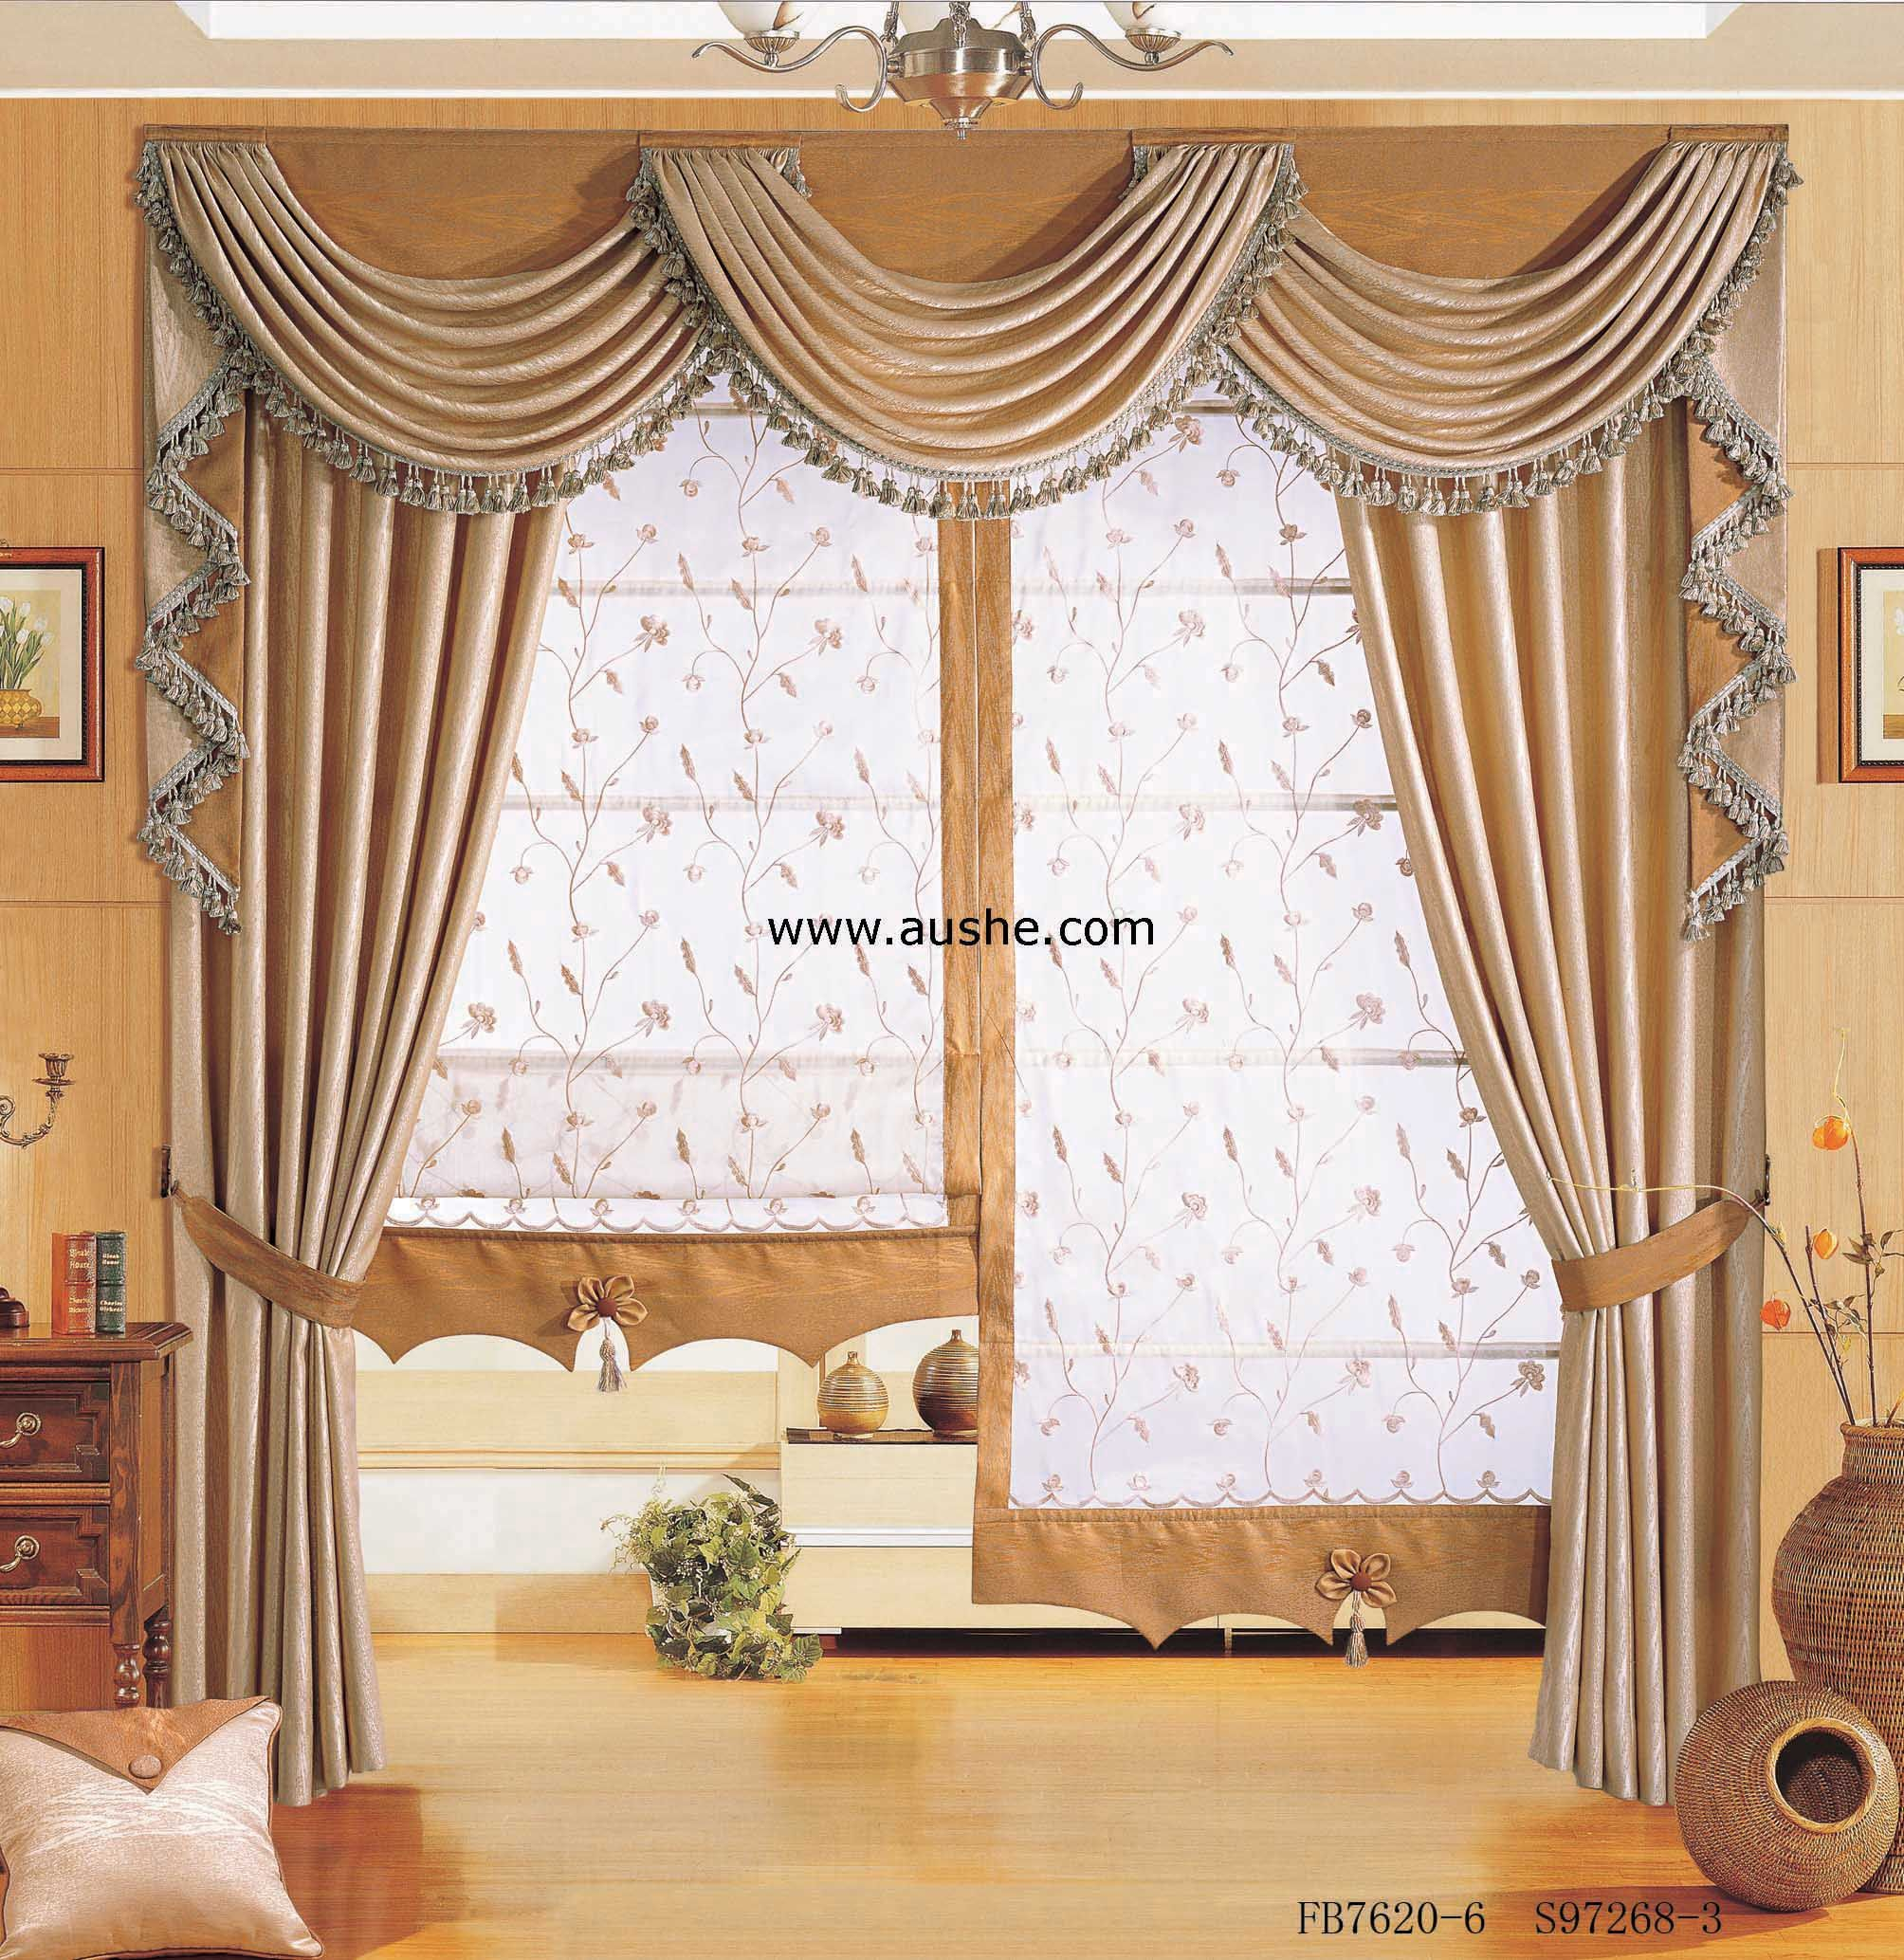 Curtain valances google search elegant drapery for Curtains and drapes for bedroom ideas